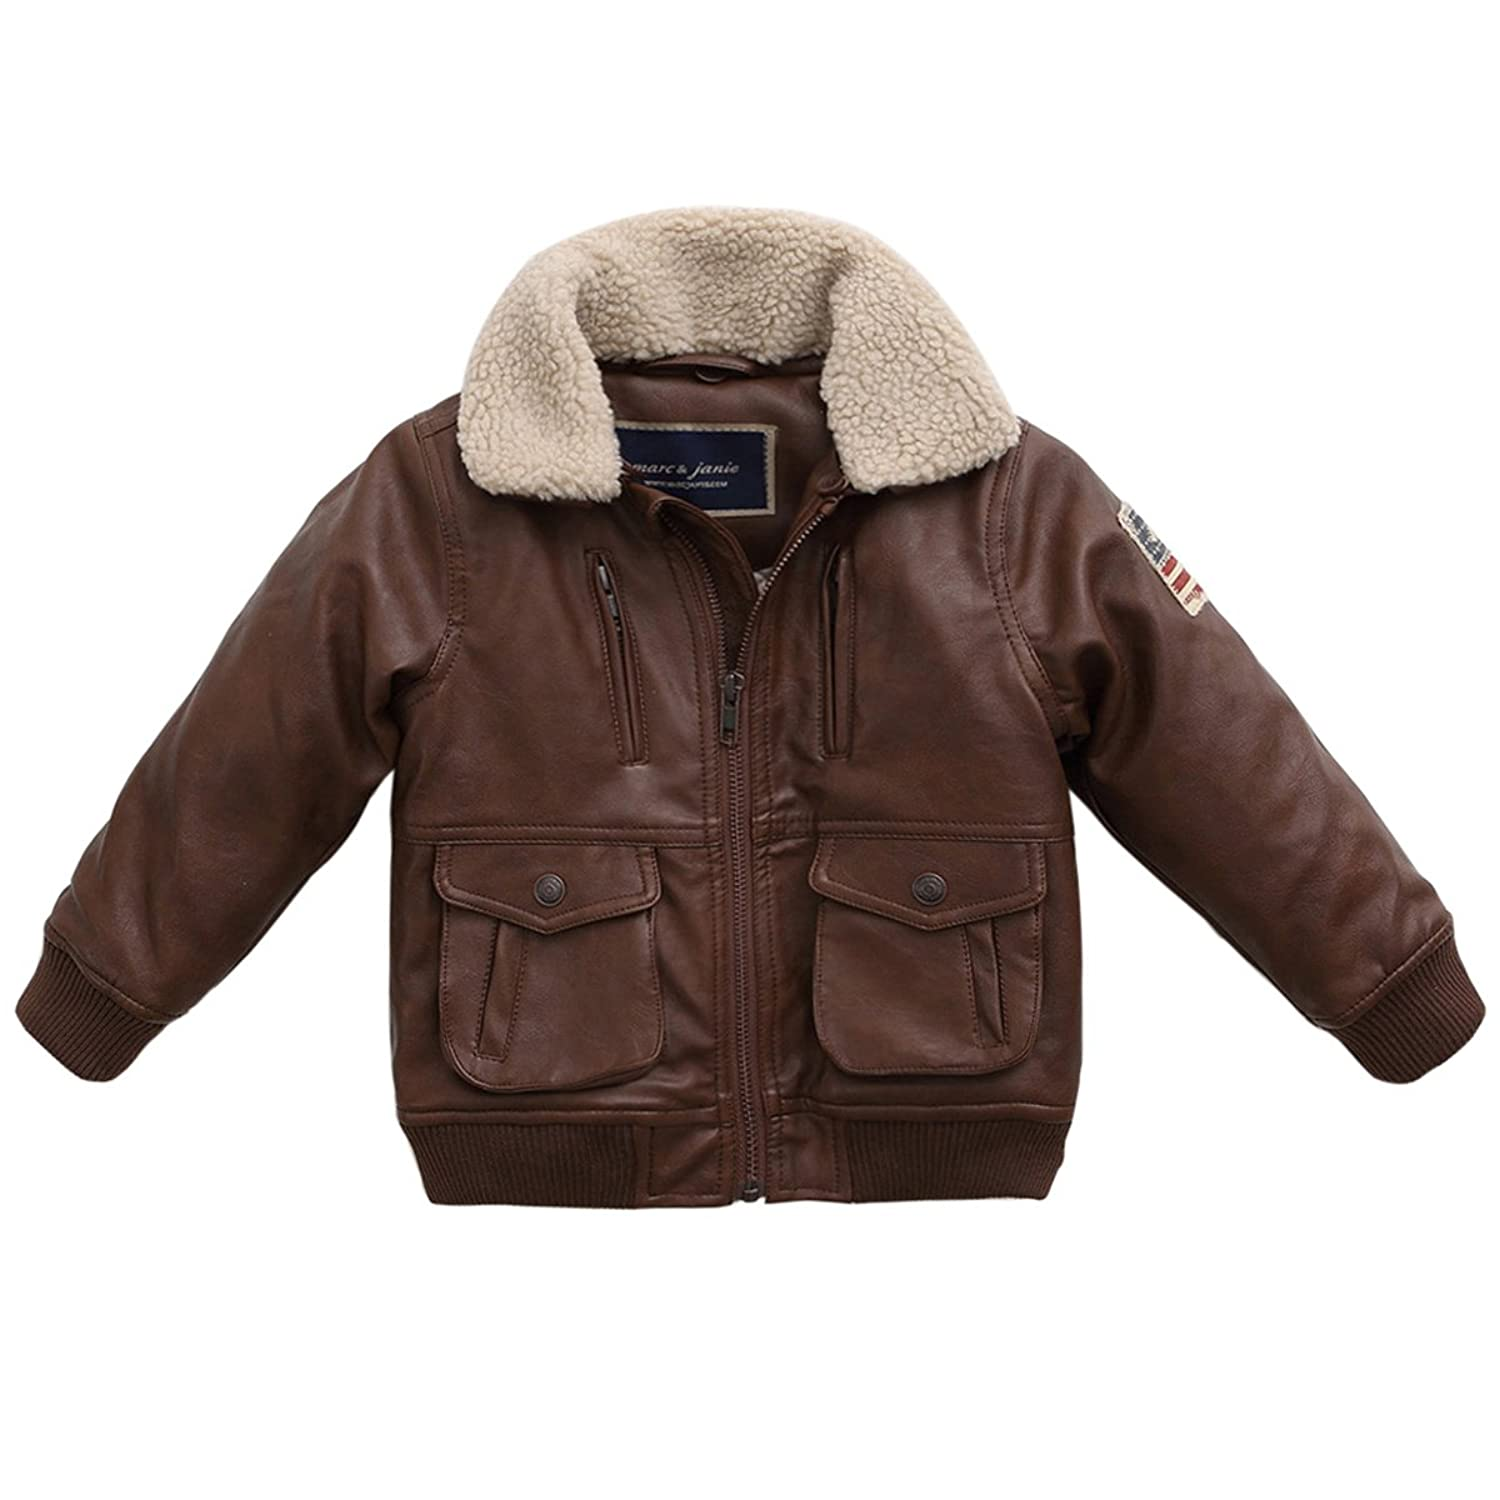 1940s Children's Clothing: Girls, Boys, Baby, Toddler marc janie Baby Toddler Boys Military Flight Leather Bomber Jacket $55.90 AT vintagedancer.com